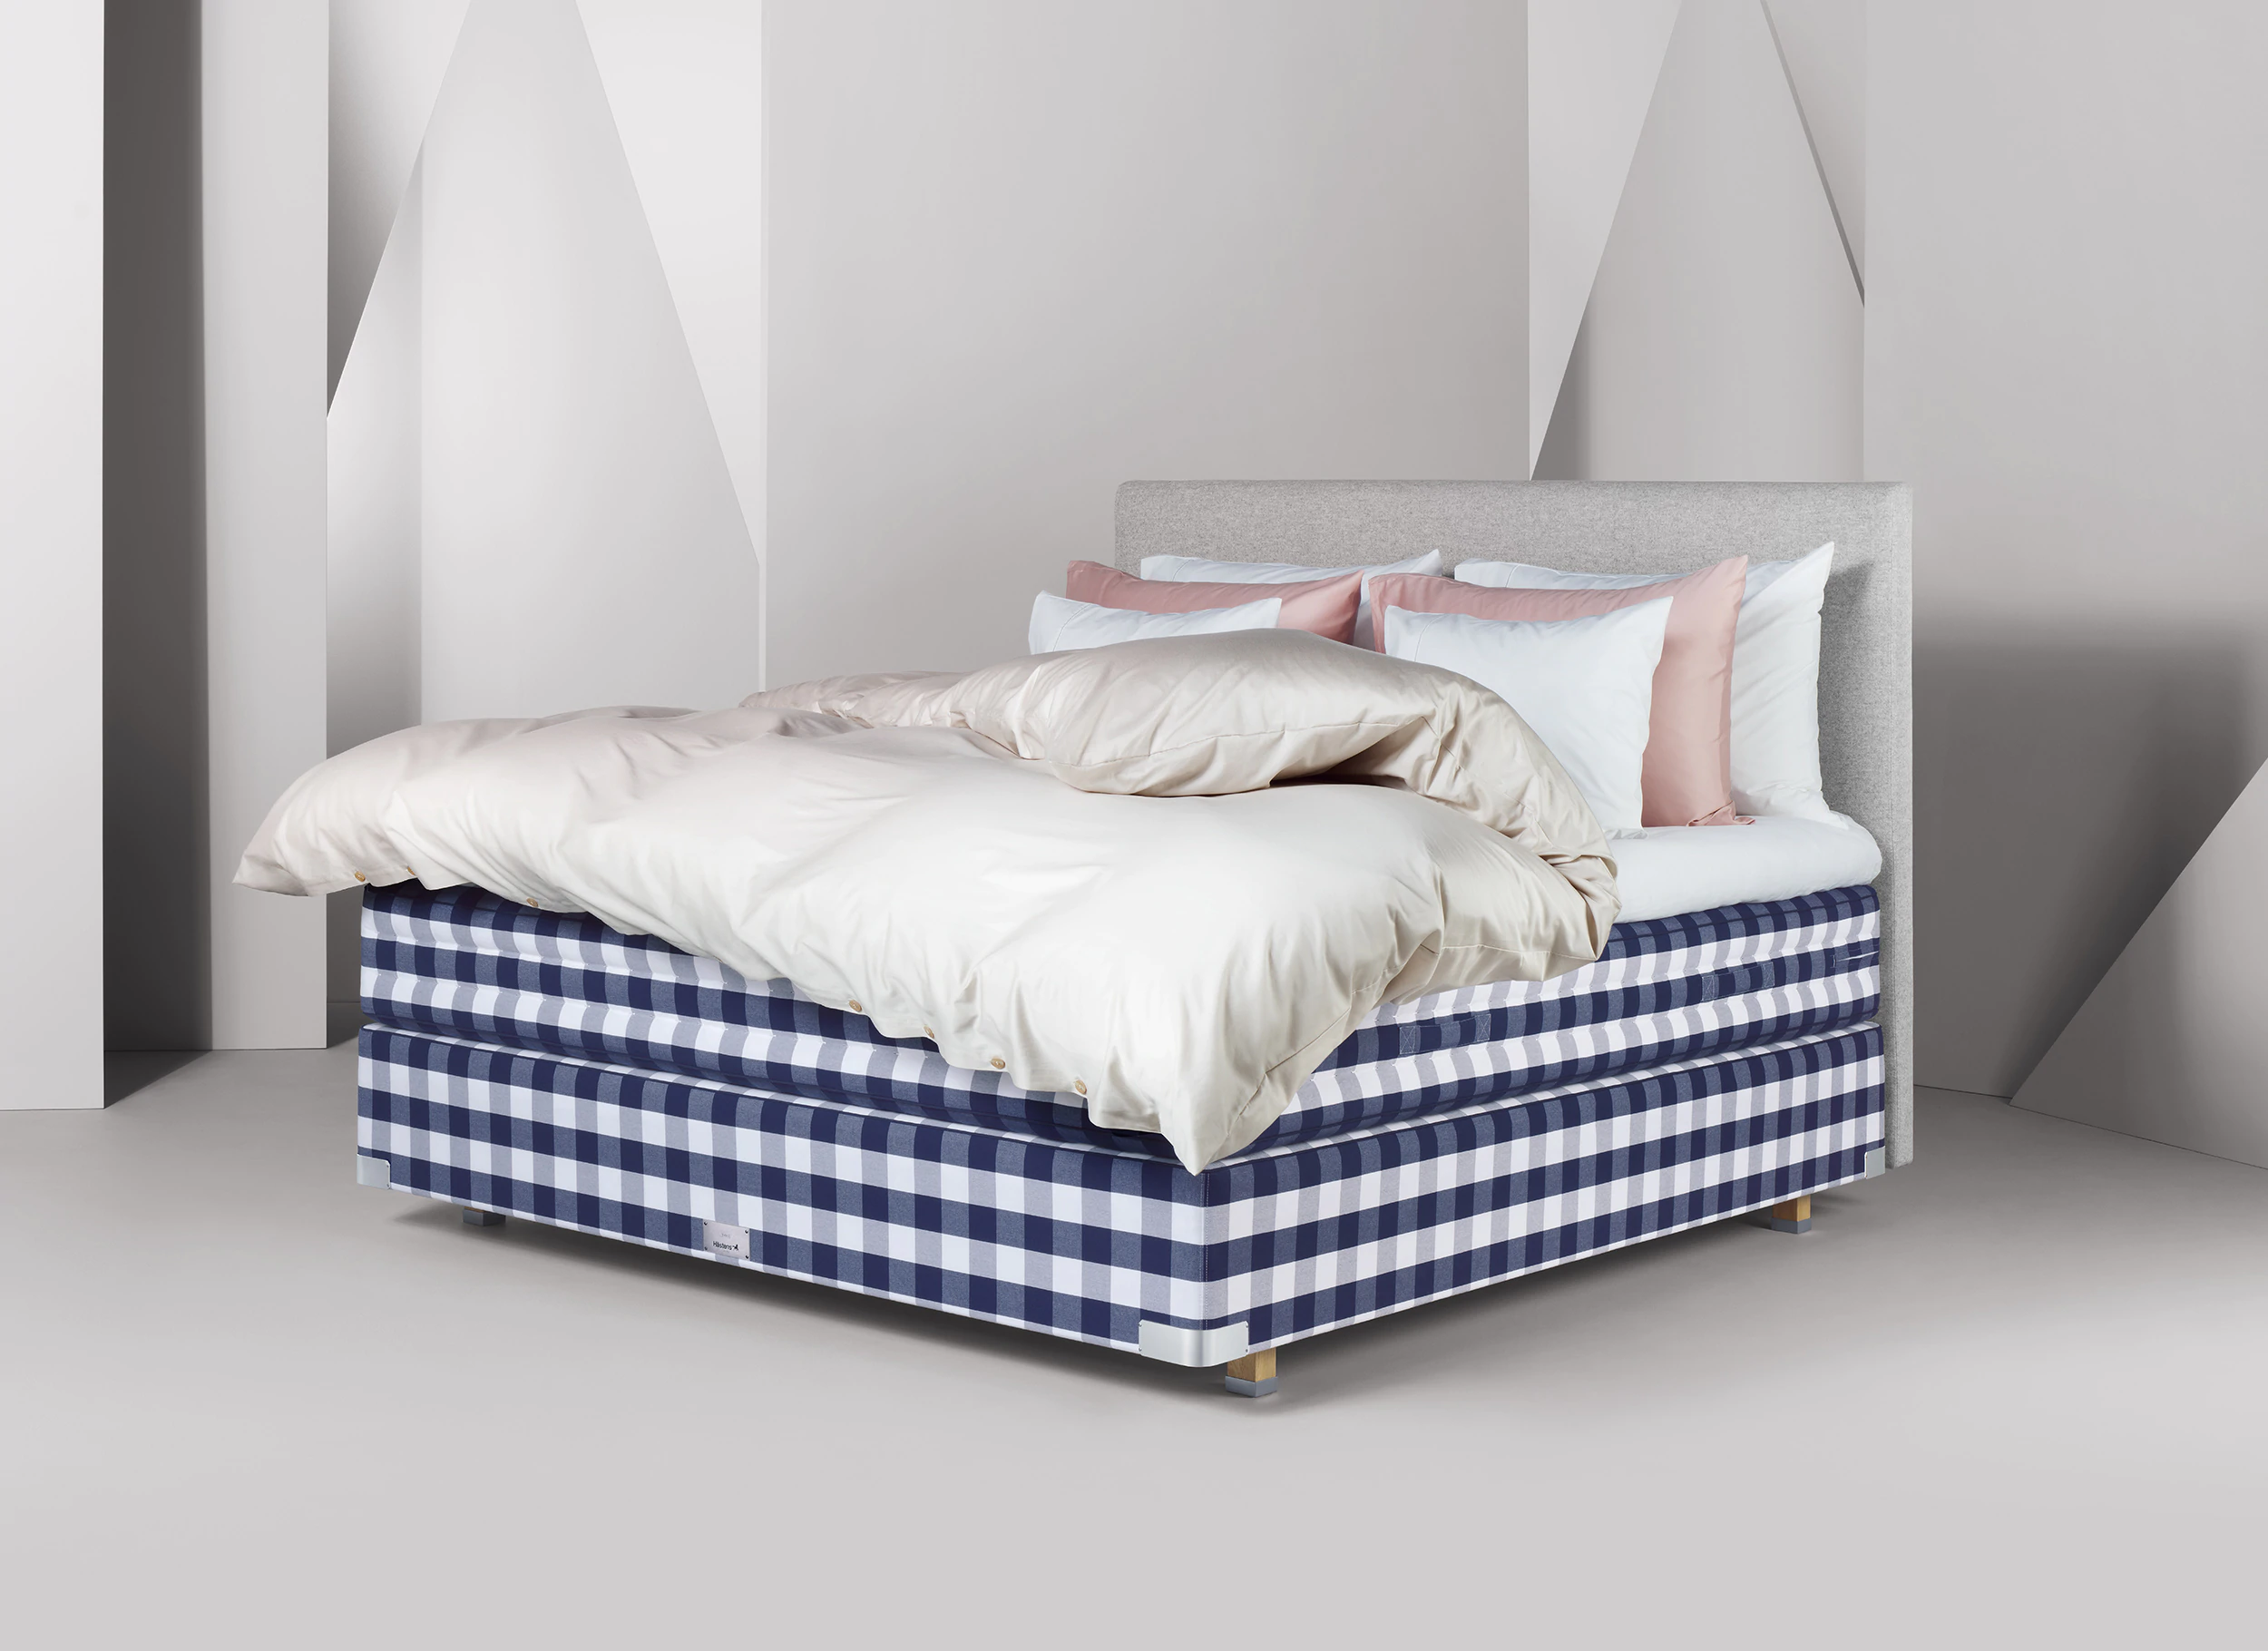 Beds & Mattresses Adjustable, Continental & Frame Beds